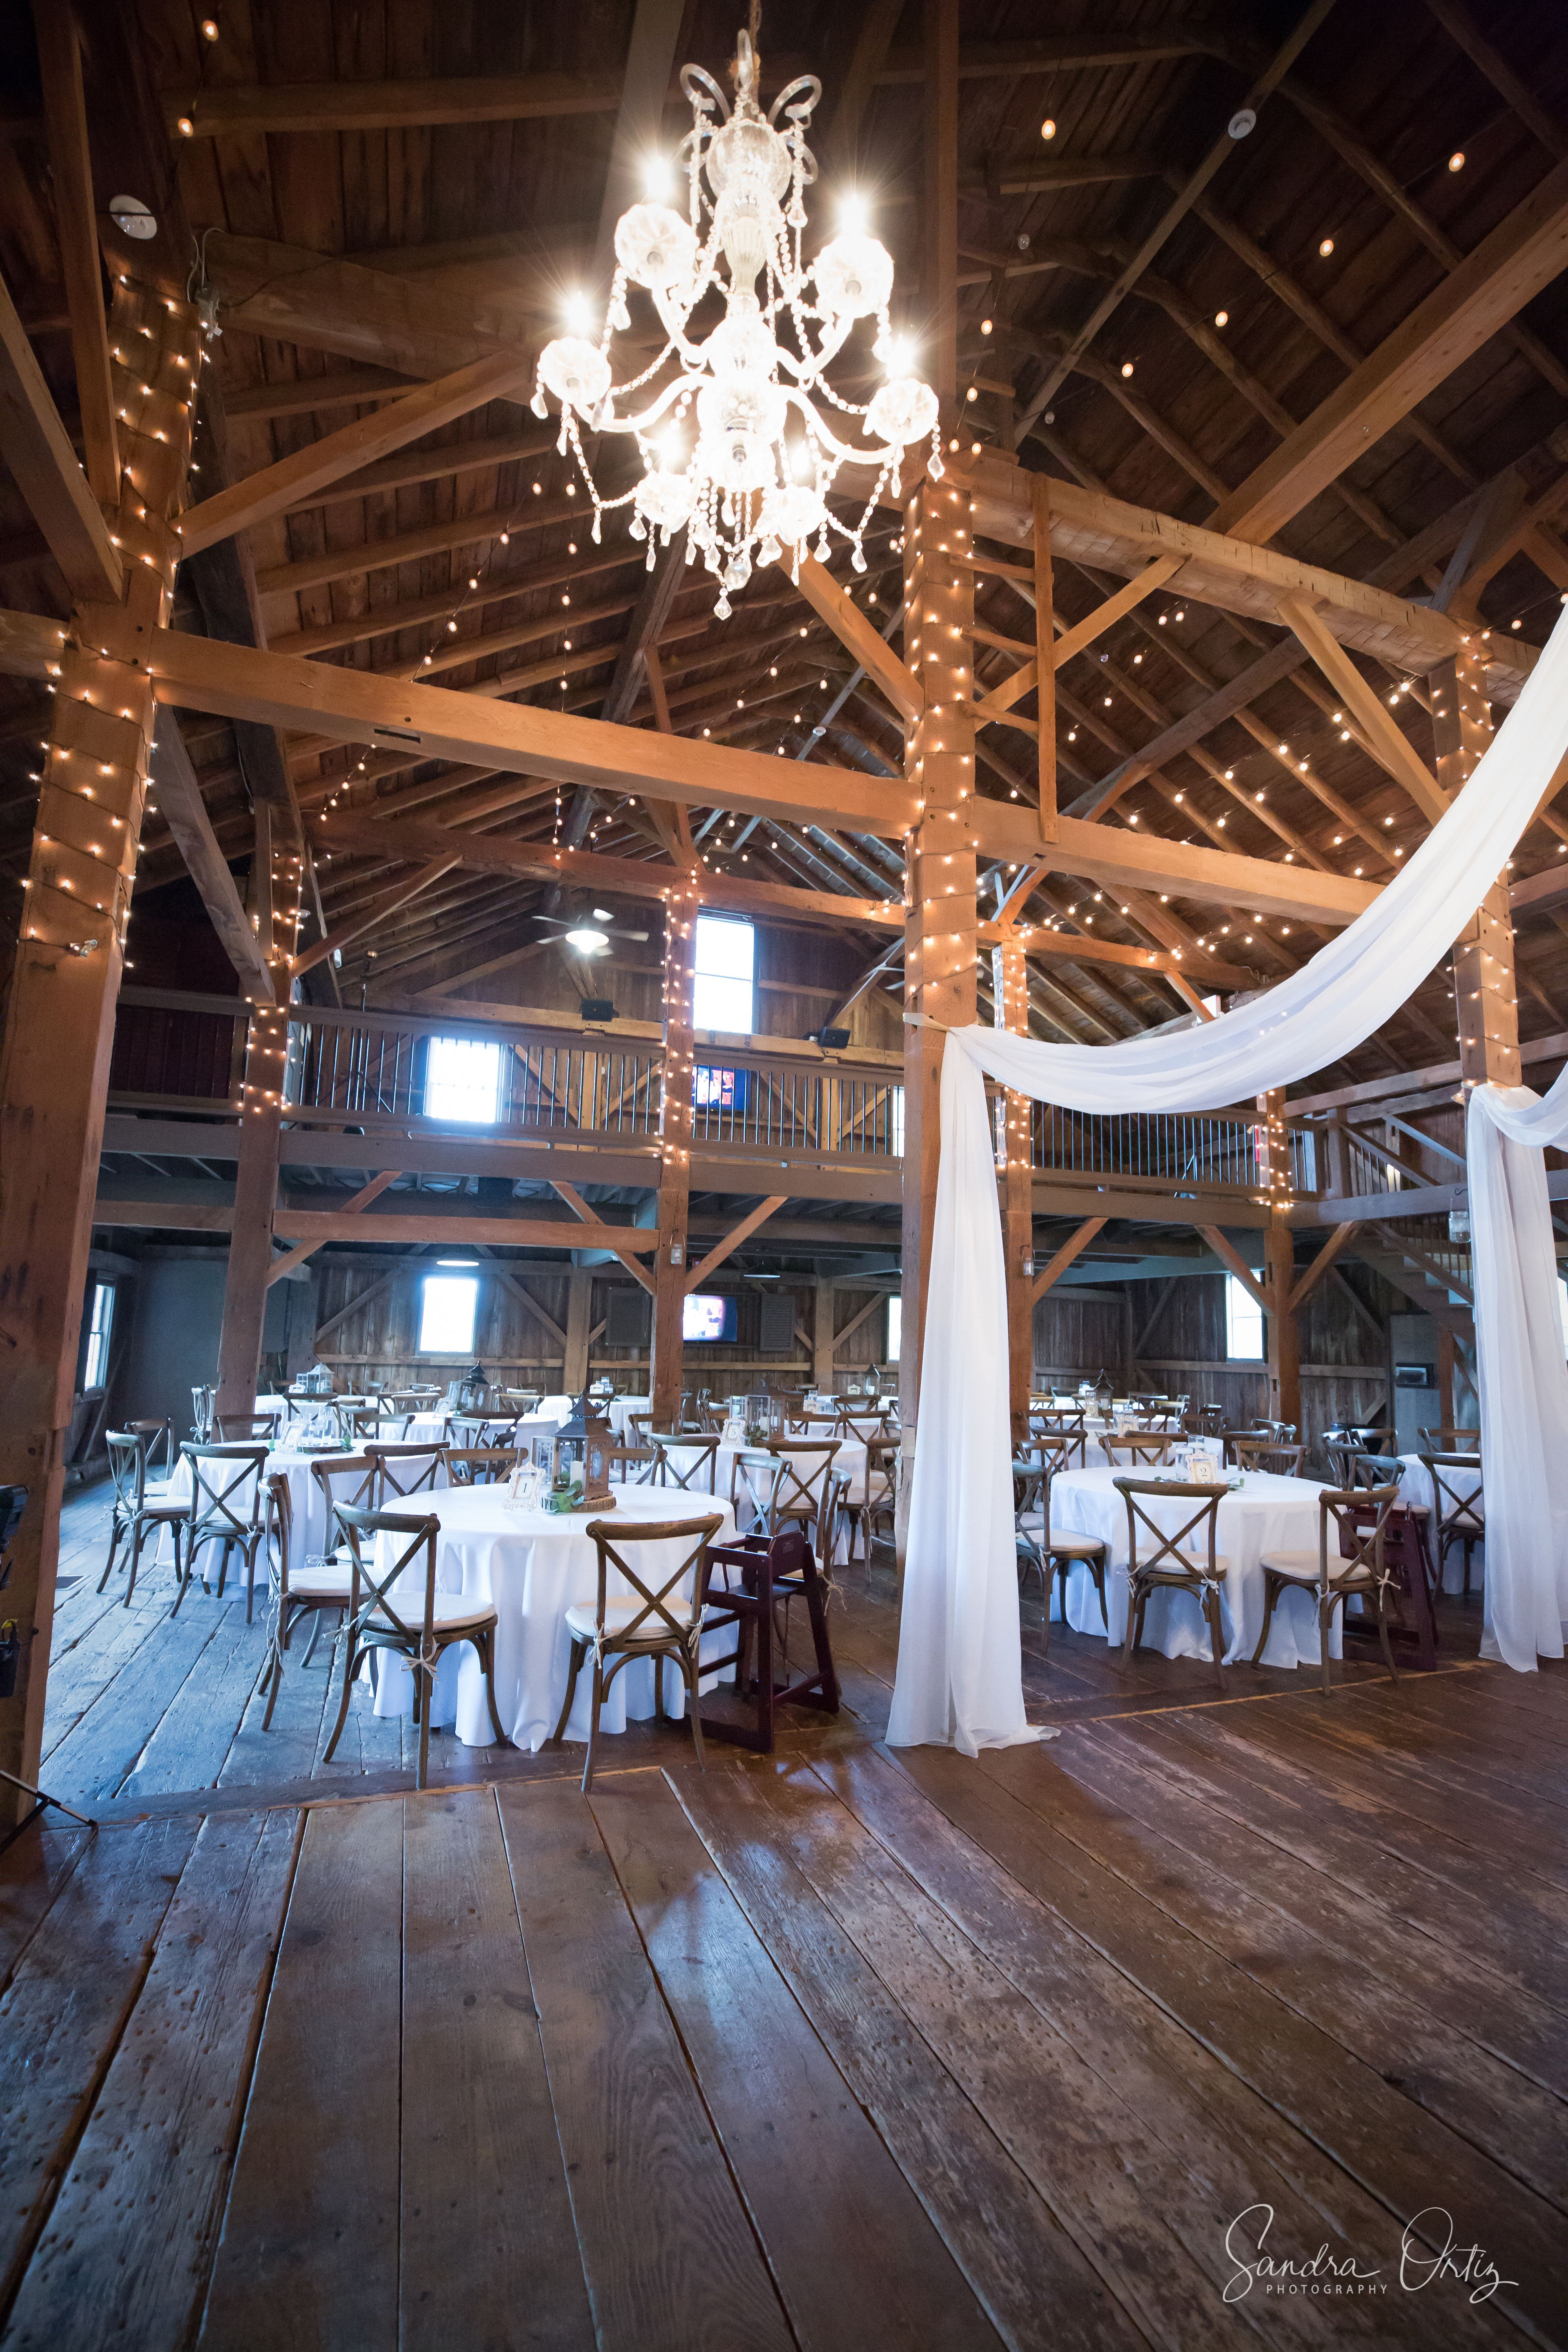 Rustic Barn Wedding Venue In Indiana With Gorgeous Lighting And